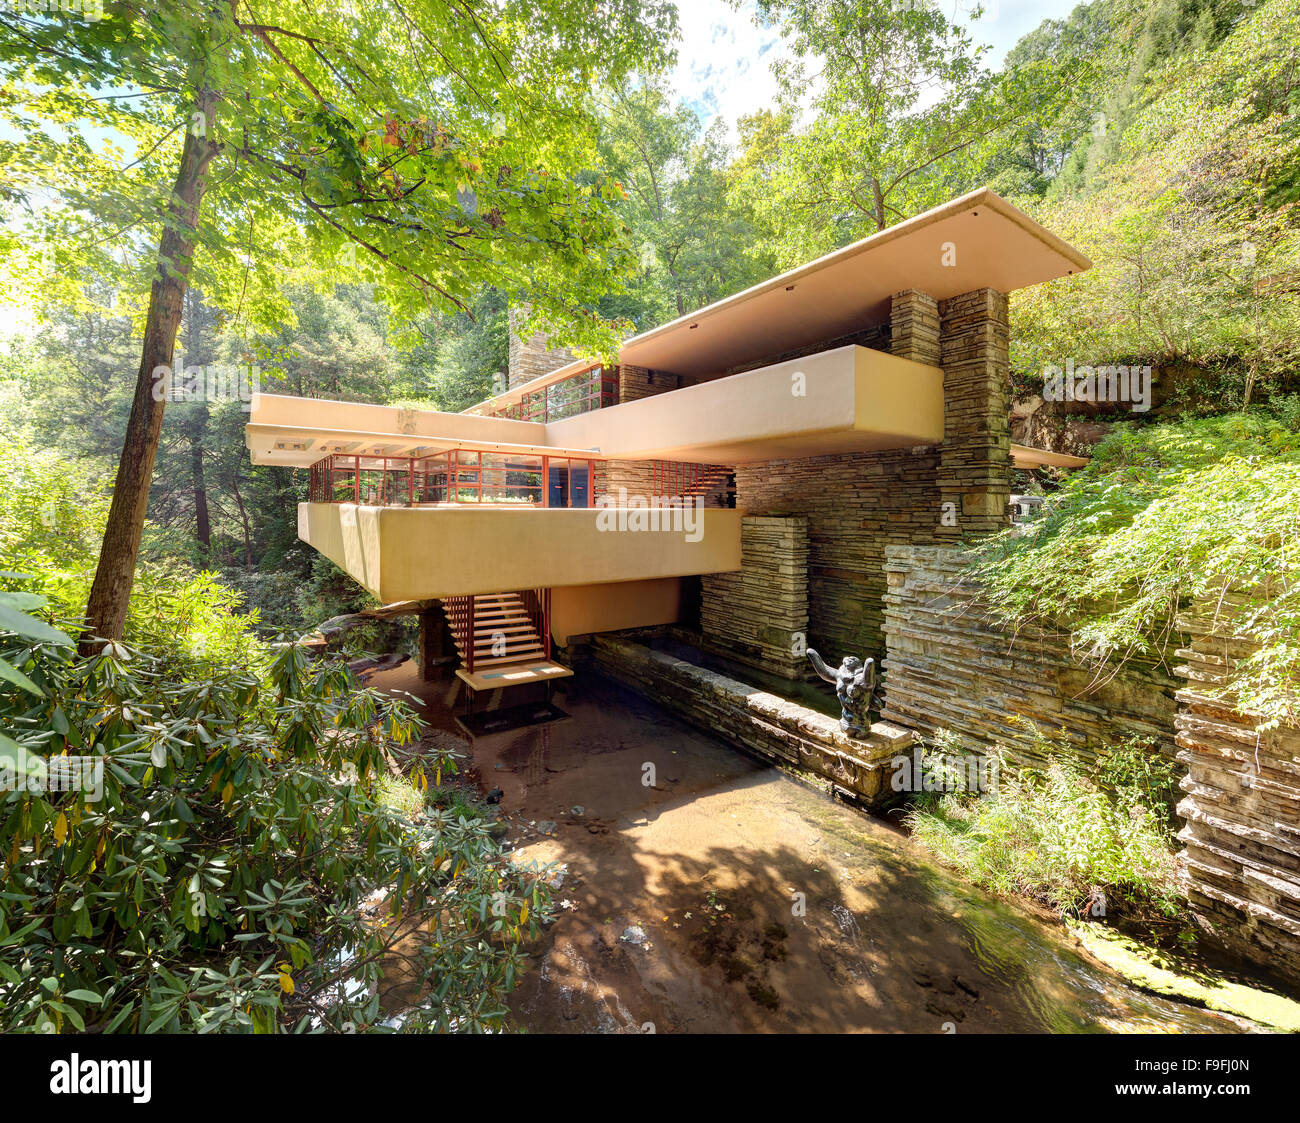 https://c7.alamy.com/comp/F9FJ0N/fallingwater-or-kaufmann-residence-aka-falling-water-is-a-house-by-F9FJ0N.jpg